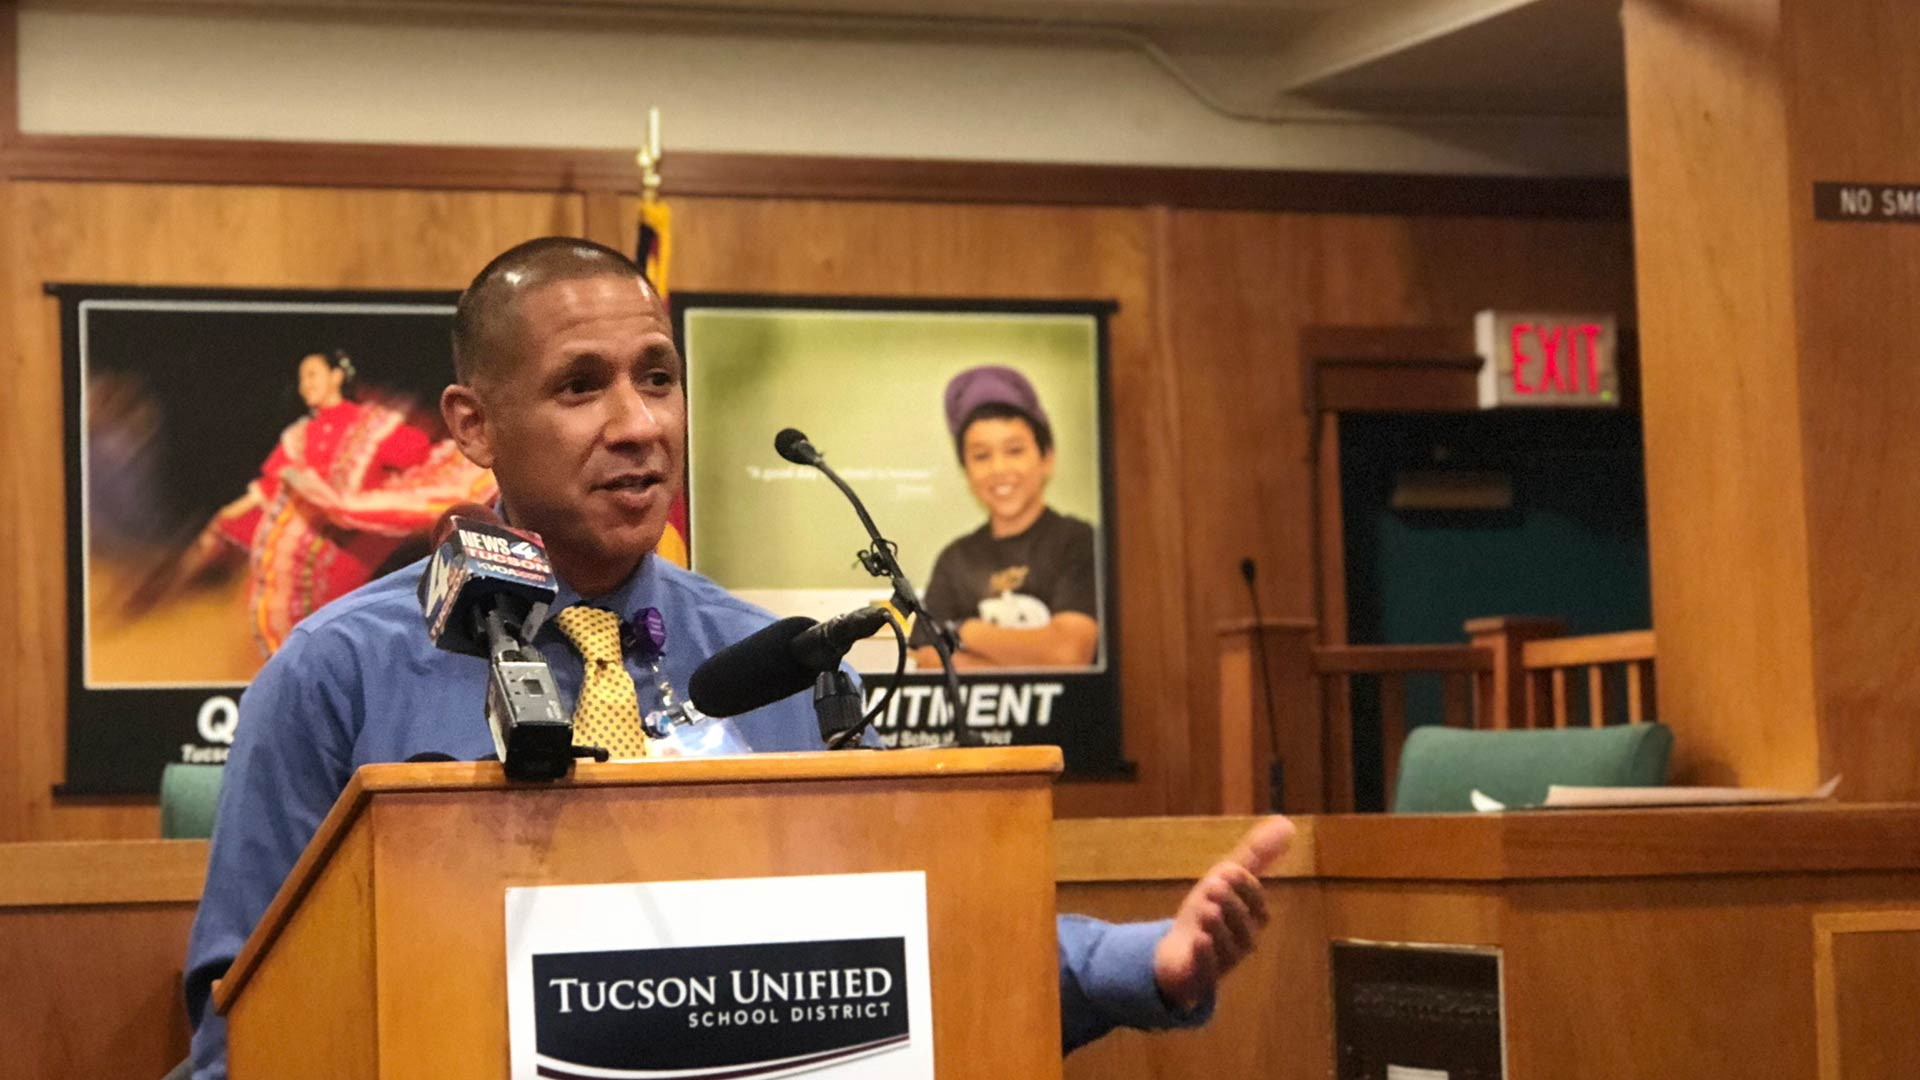 Tucson Unified School District Superintendent Gabriel Trujillo speaking at district headquarters, July 17, 2018.